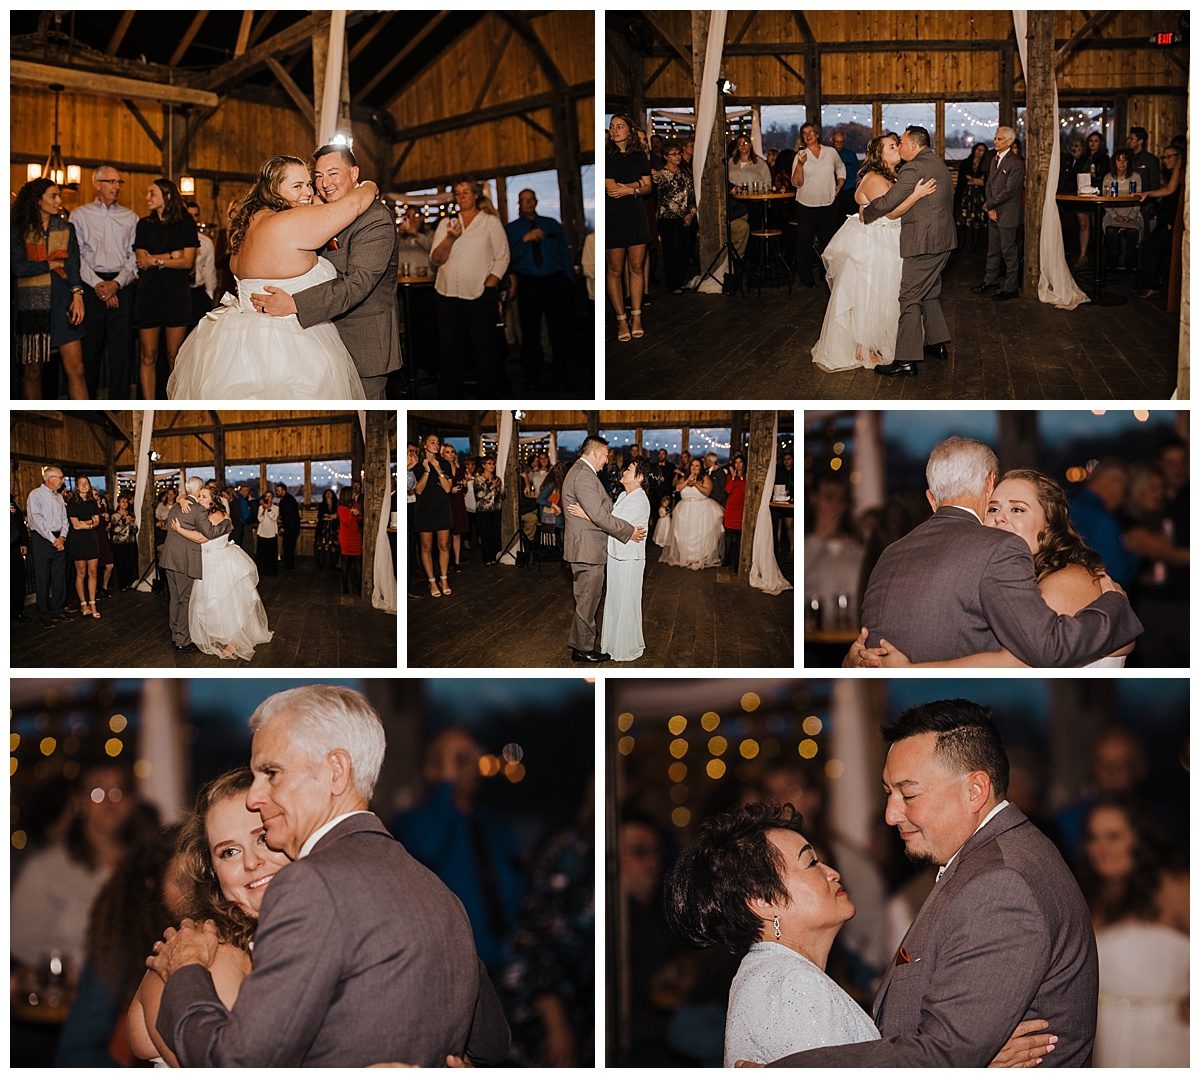 Mr. & Mrs. Sklodowski - White Birch Barn - Northeast Ohio Wedding Photographer